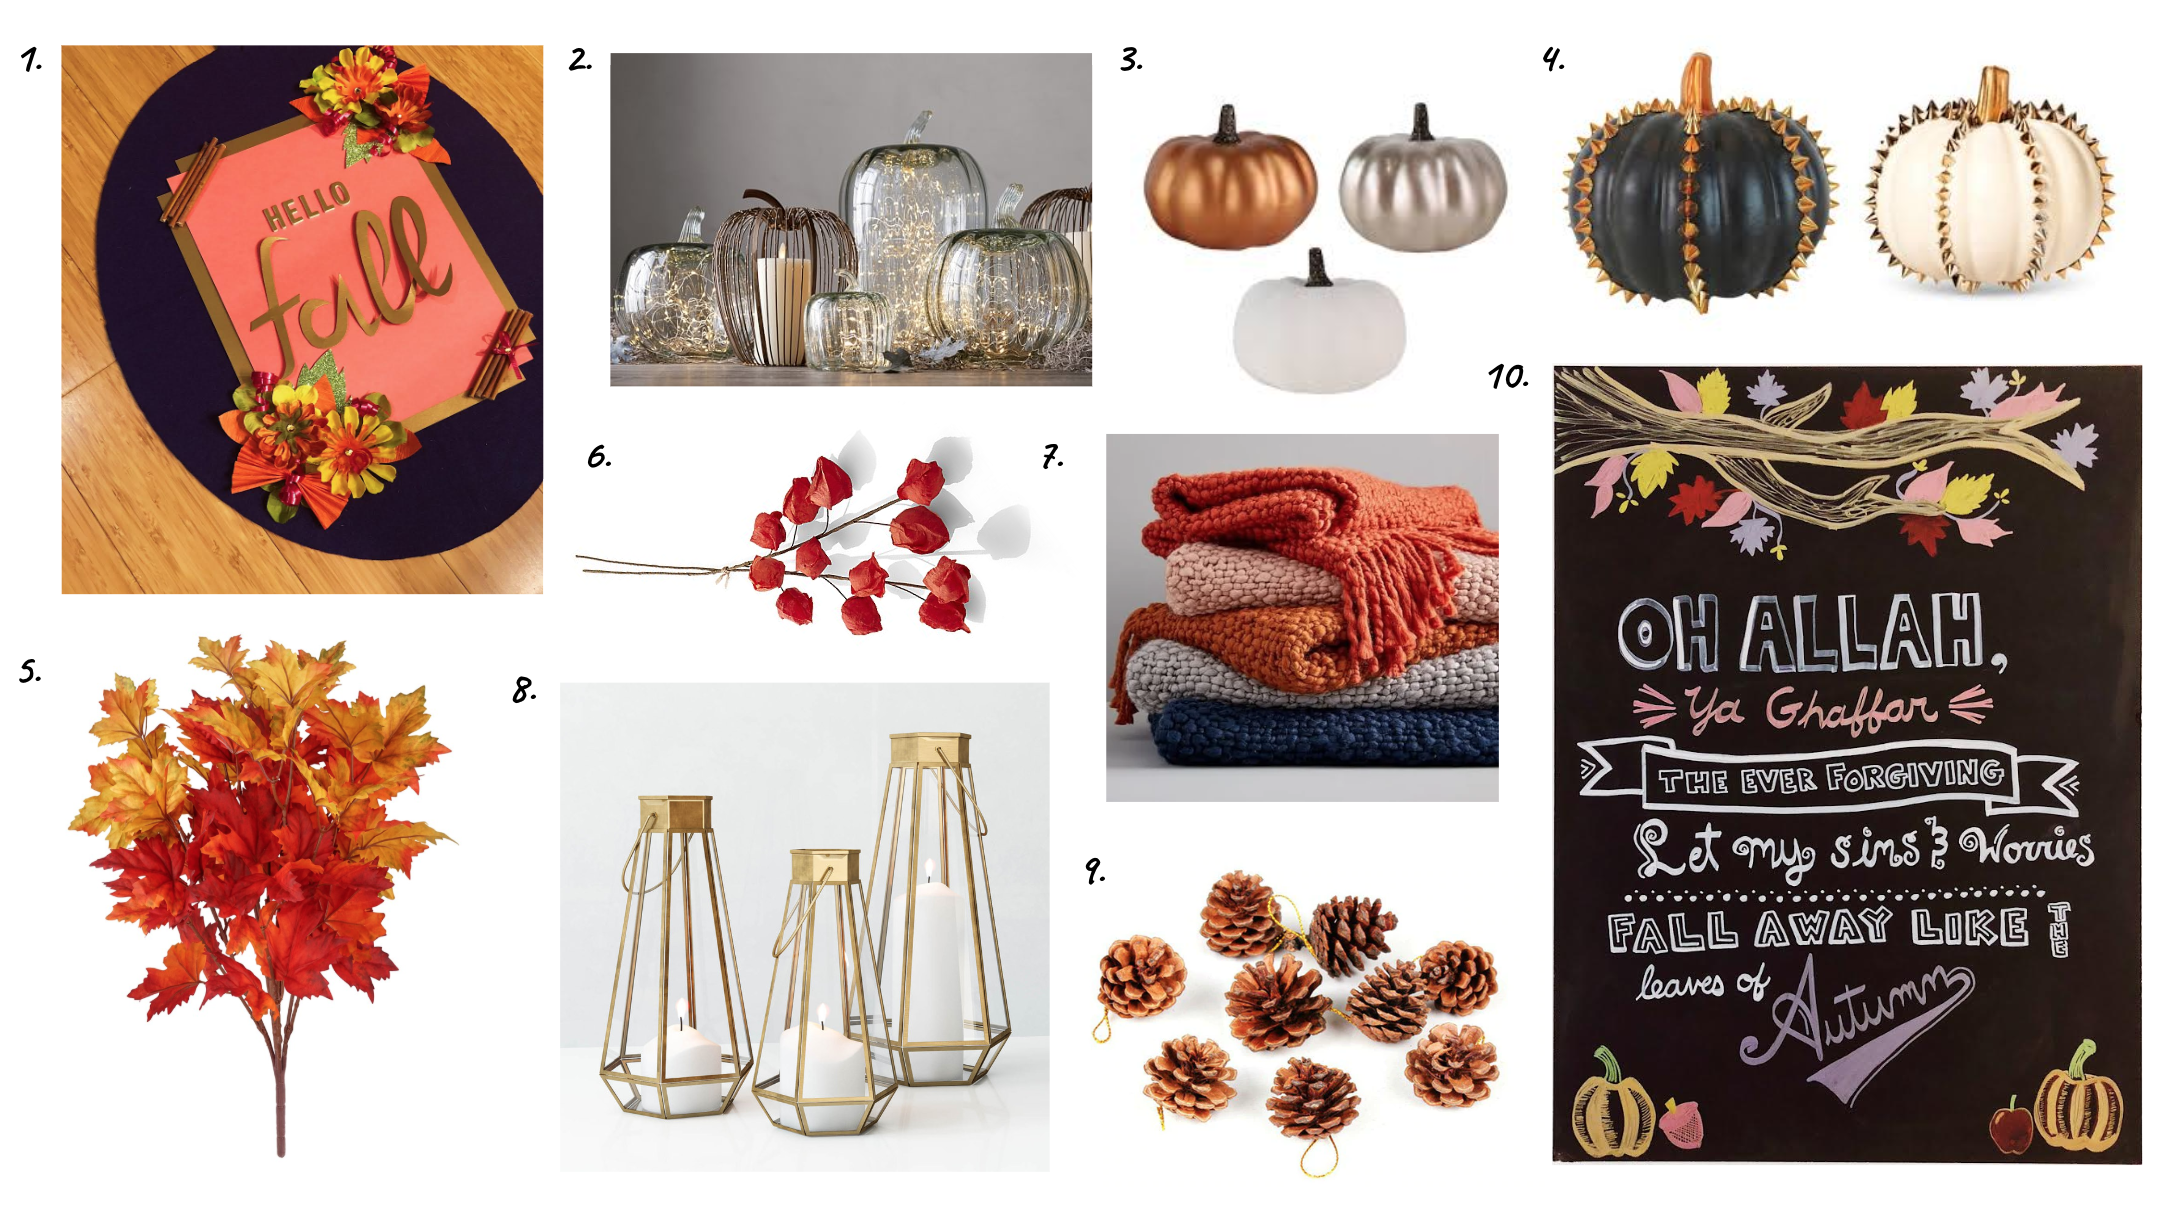 Muslim-home-decor-blog-modern-fall-decorating-inspiration-board